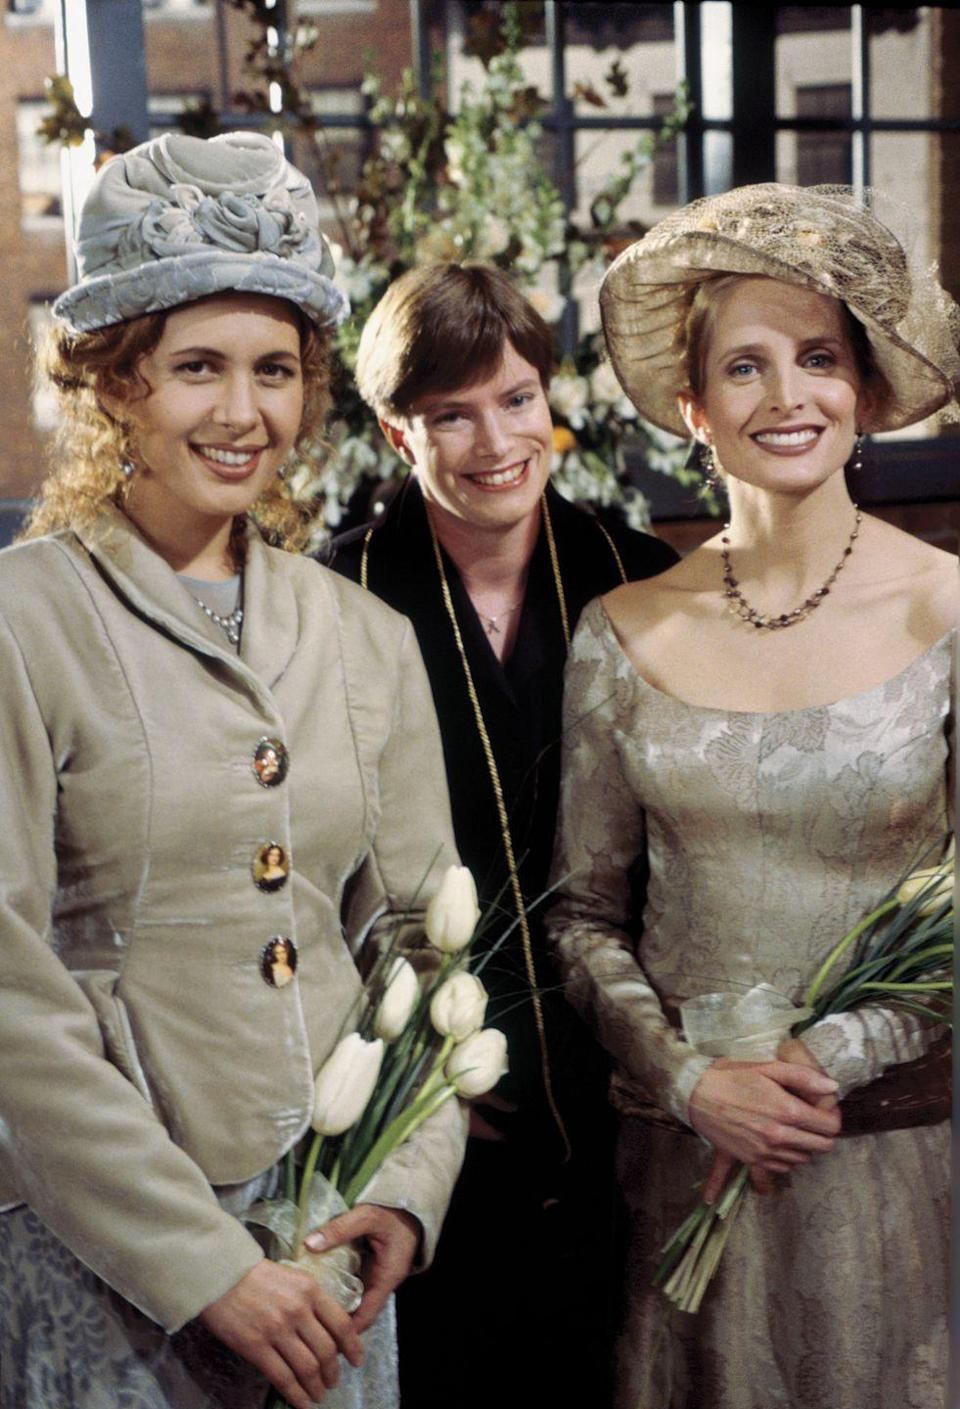 """<p>The first same sex wedding on scripted television appeared on <em>Friends</em>.</p><p>In Season 1, Ross' wife, Carol, leaves him for Susan, whom she weds in Season 2, in an episode unmistakably titled <em>""""The One with the Lesbian Wedding."""" </em></p><p>That same year, President Clinton signed the Defense of Marriage Act (DOMA) into law, denying federal benefits to same-sex couples. In Hawaii, a judge upholds the legality of same sex marriage, per the state's ruling in 1993. In 1998, a vote in the state passed an amendment banning same-sex marriage, overturning the 1993 and 1996 rulings.</p>"""